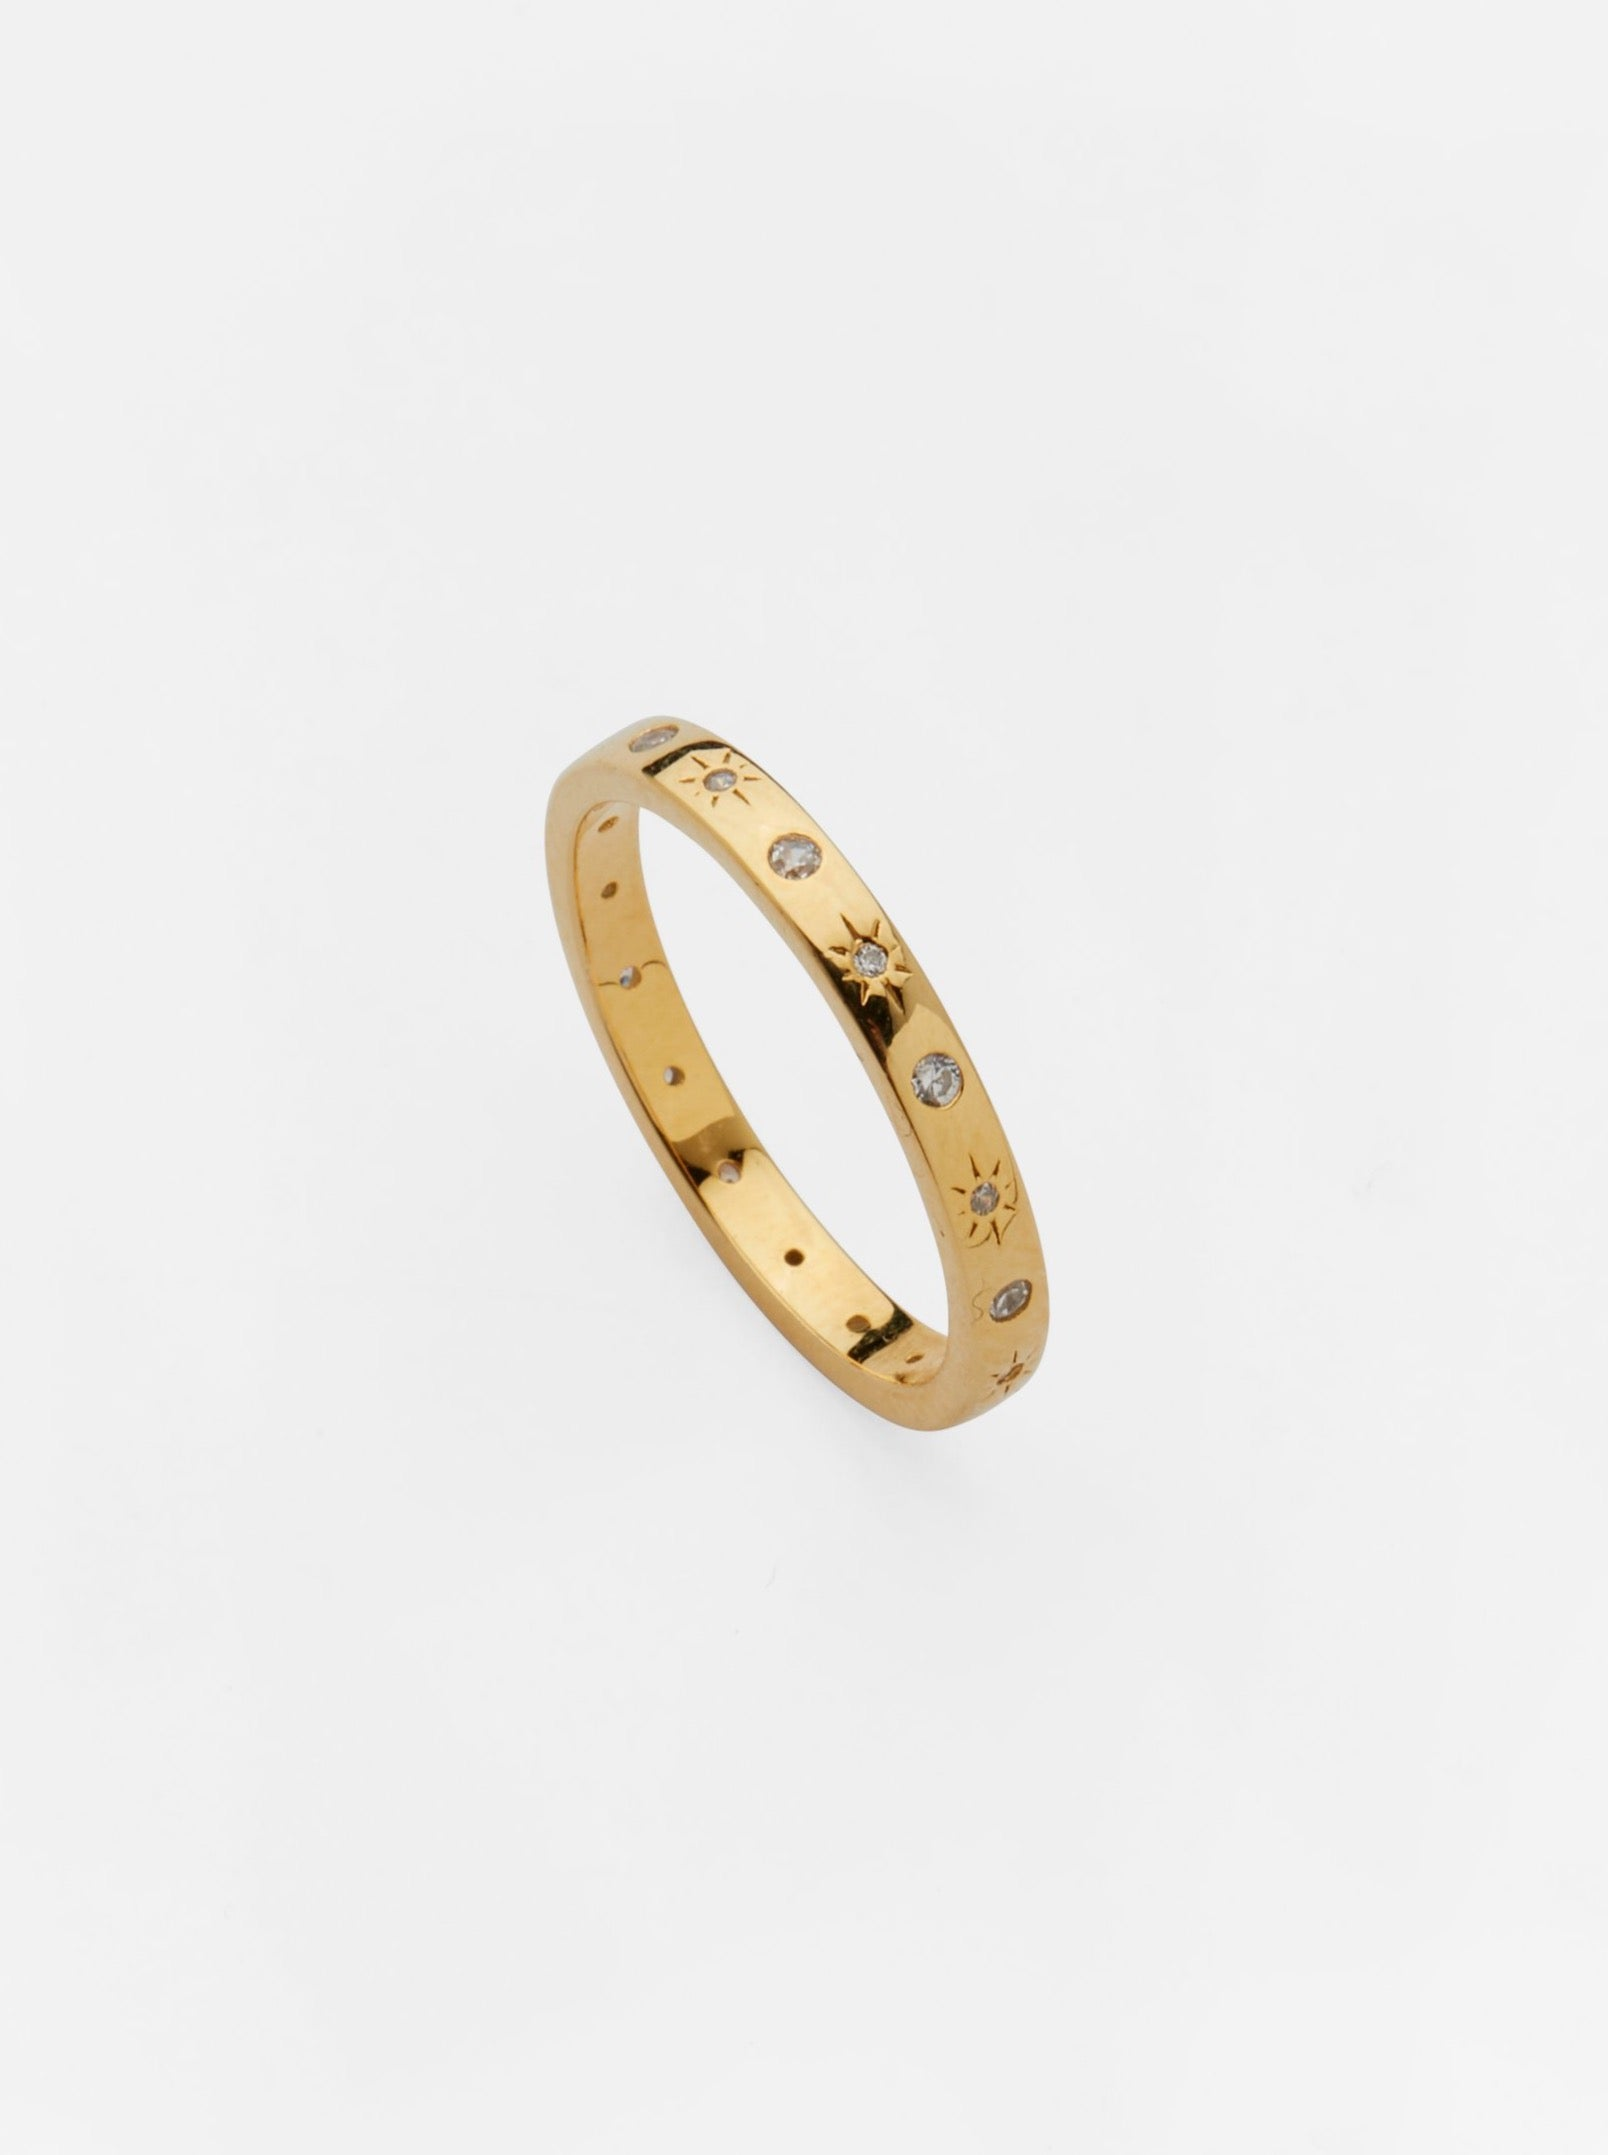 Reliquia Marta Ring in 18CT Gold Filled